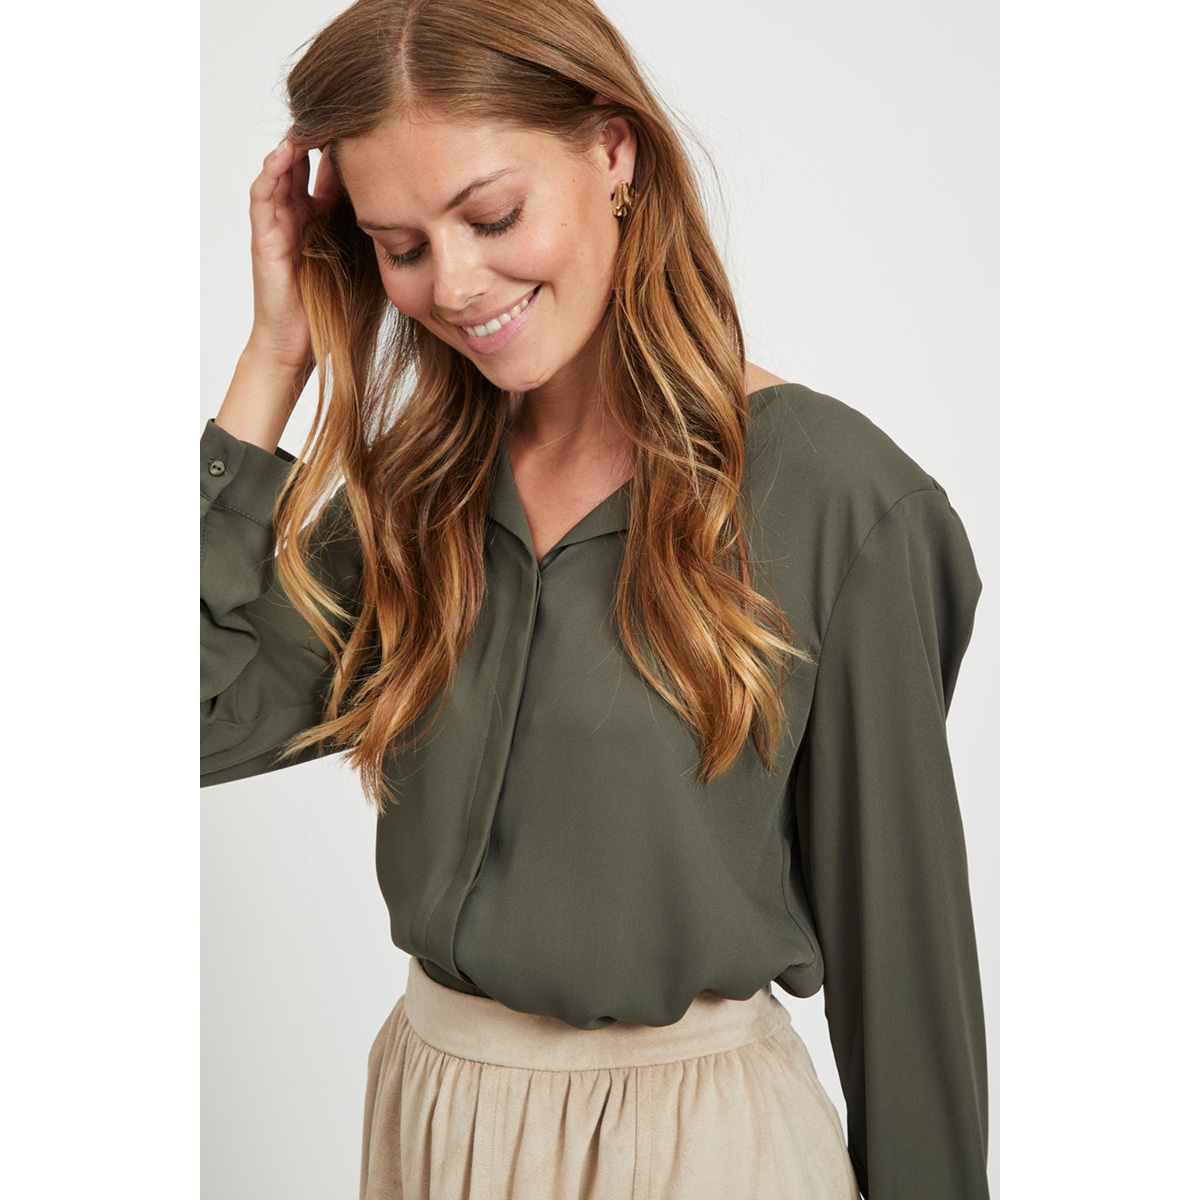 vilucy l/s shirt - noos 14044253 vila blouse forest night